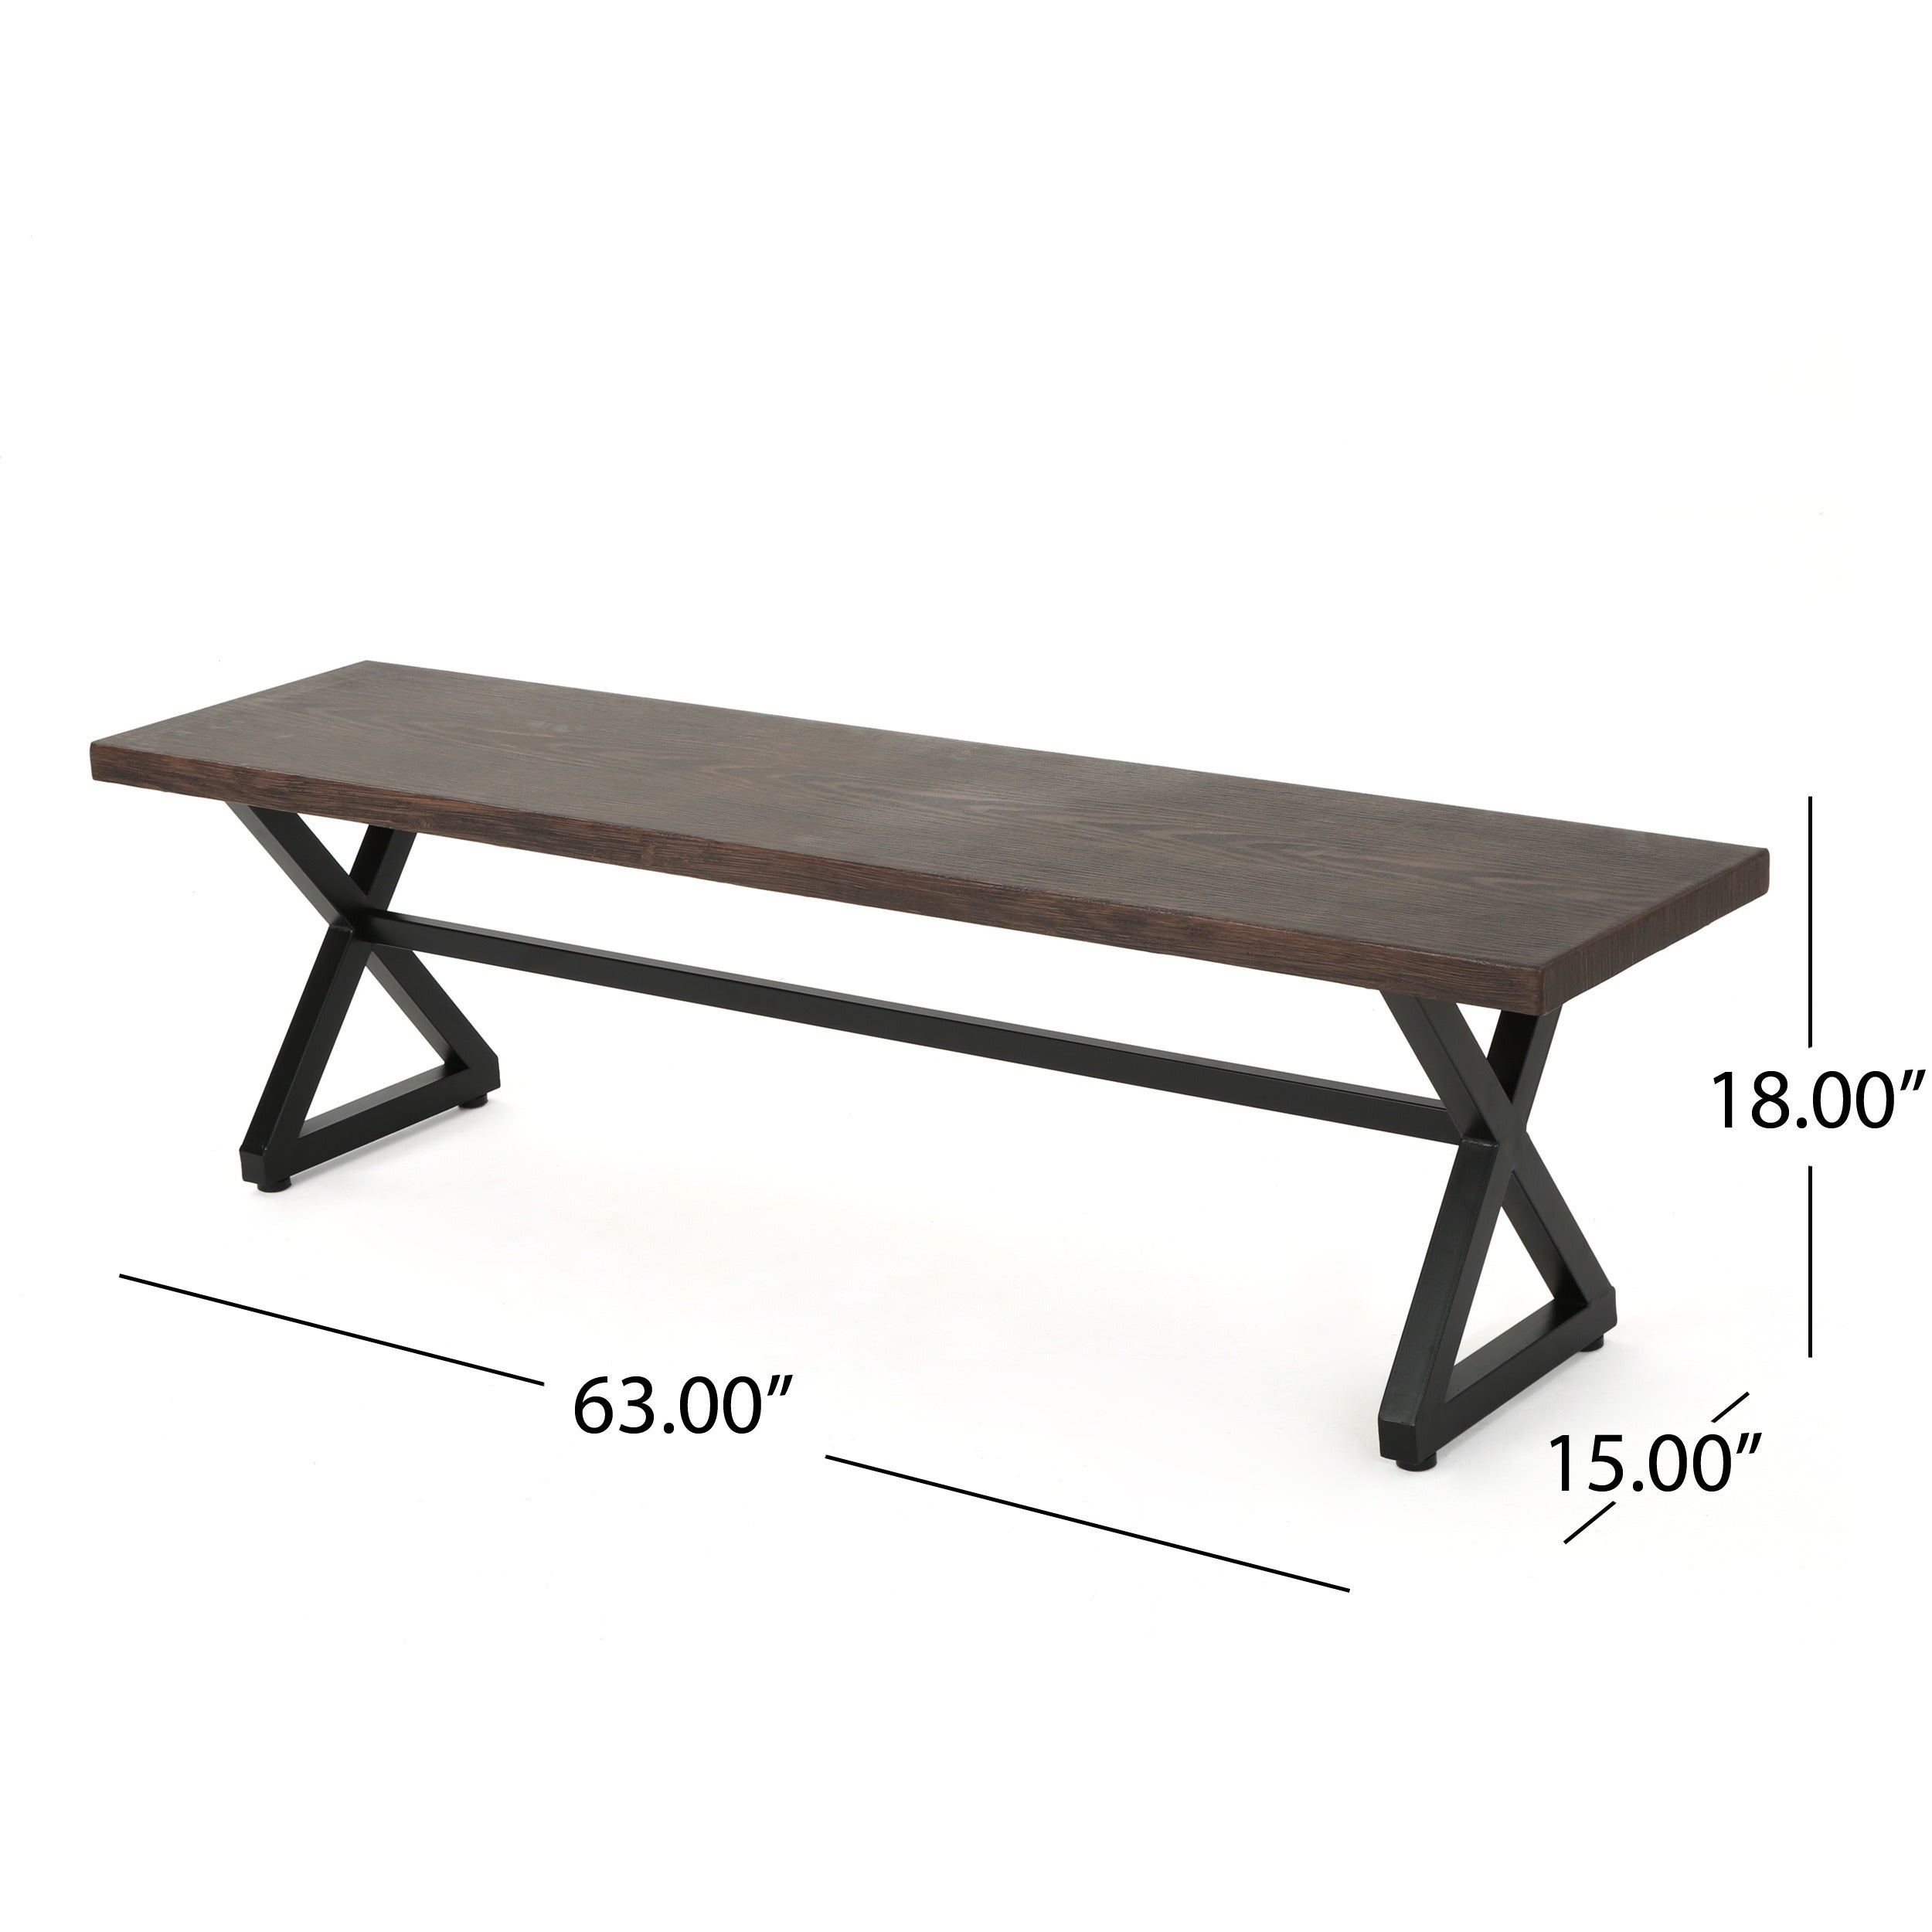 Rolando Outdoor Aluminum Dining Bench Set Of 2 By Christopher Knight Home On Free Shipping Today 18108921